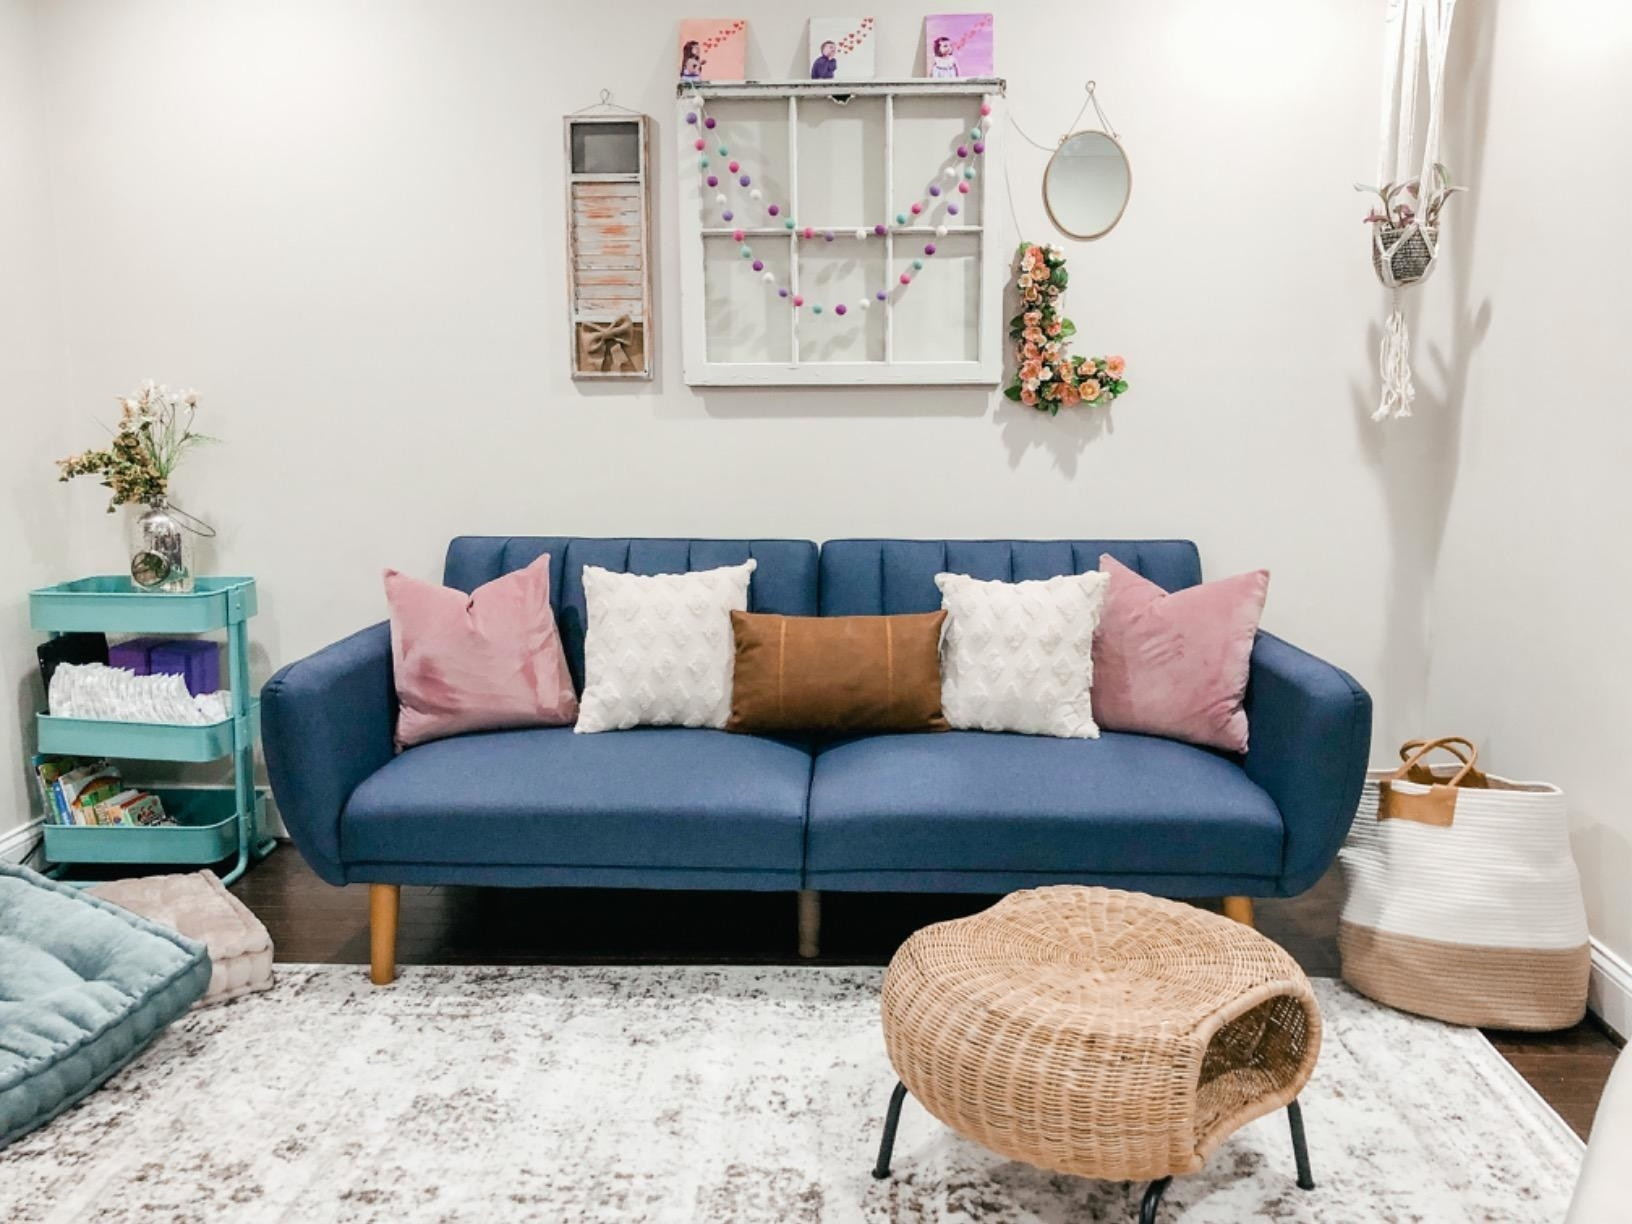 Reviewer's navy blue velvet futon adorned with pink, white, and rust-tone accent pillows in a room filled with wicker tables and baskets